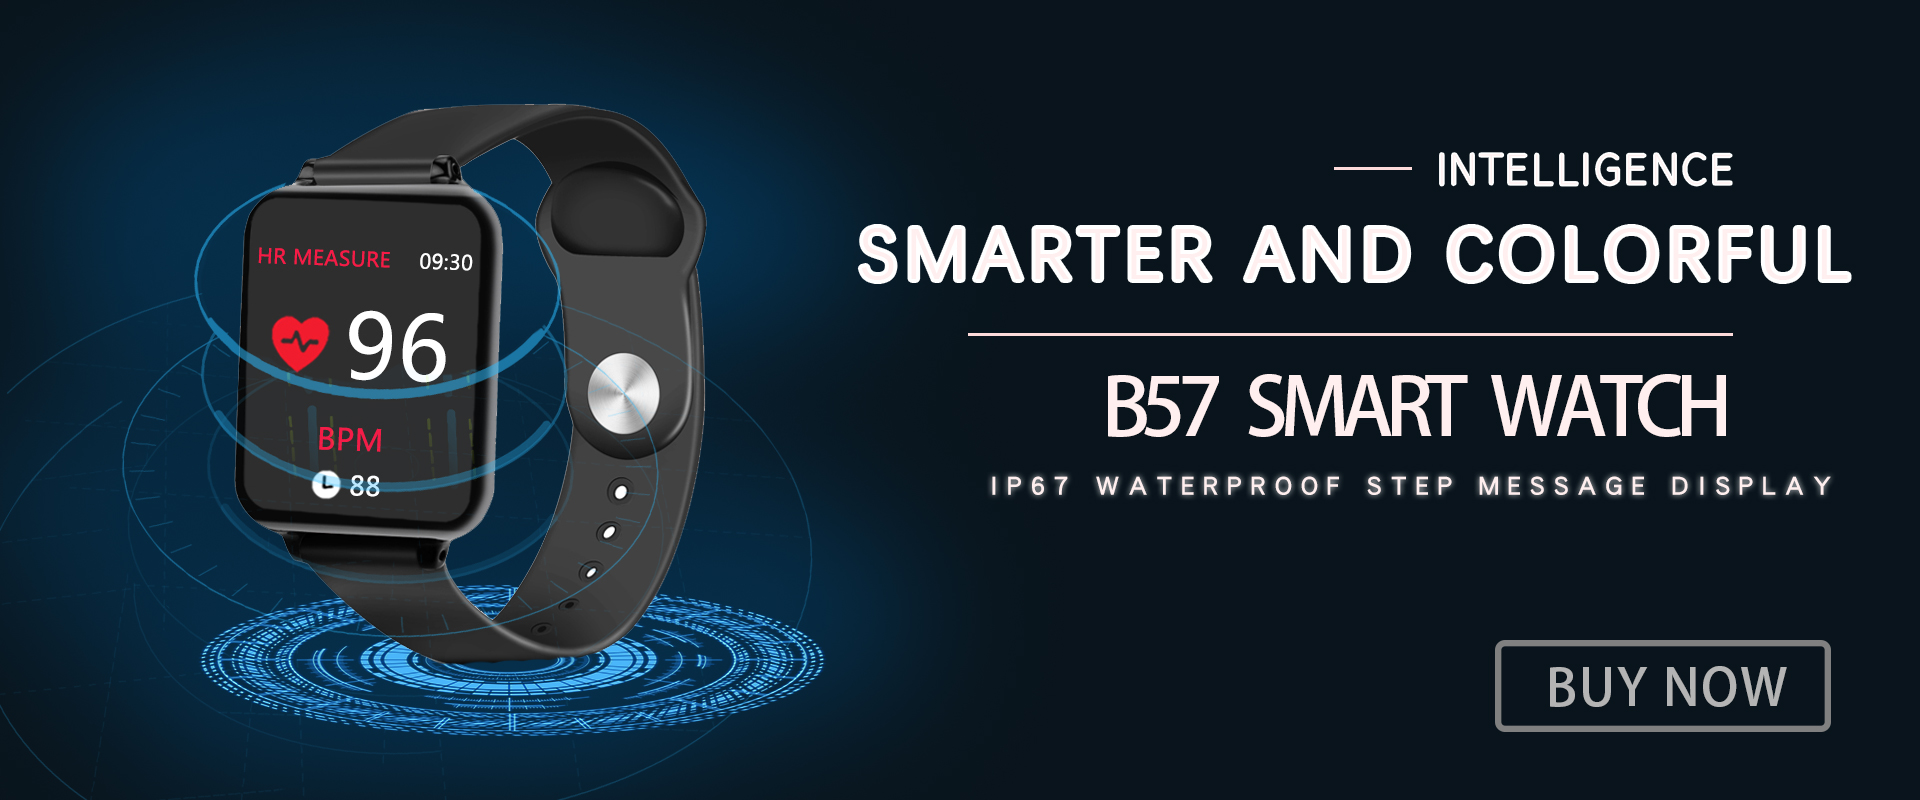 H0b3f04c4ba0945db972d34e3f14181b7h M2 Sport Bracelet Smart Band Heart Rate Watch Men Women Smartwatch For Android IOS Fitness Tracker Electronics Smart Clock